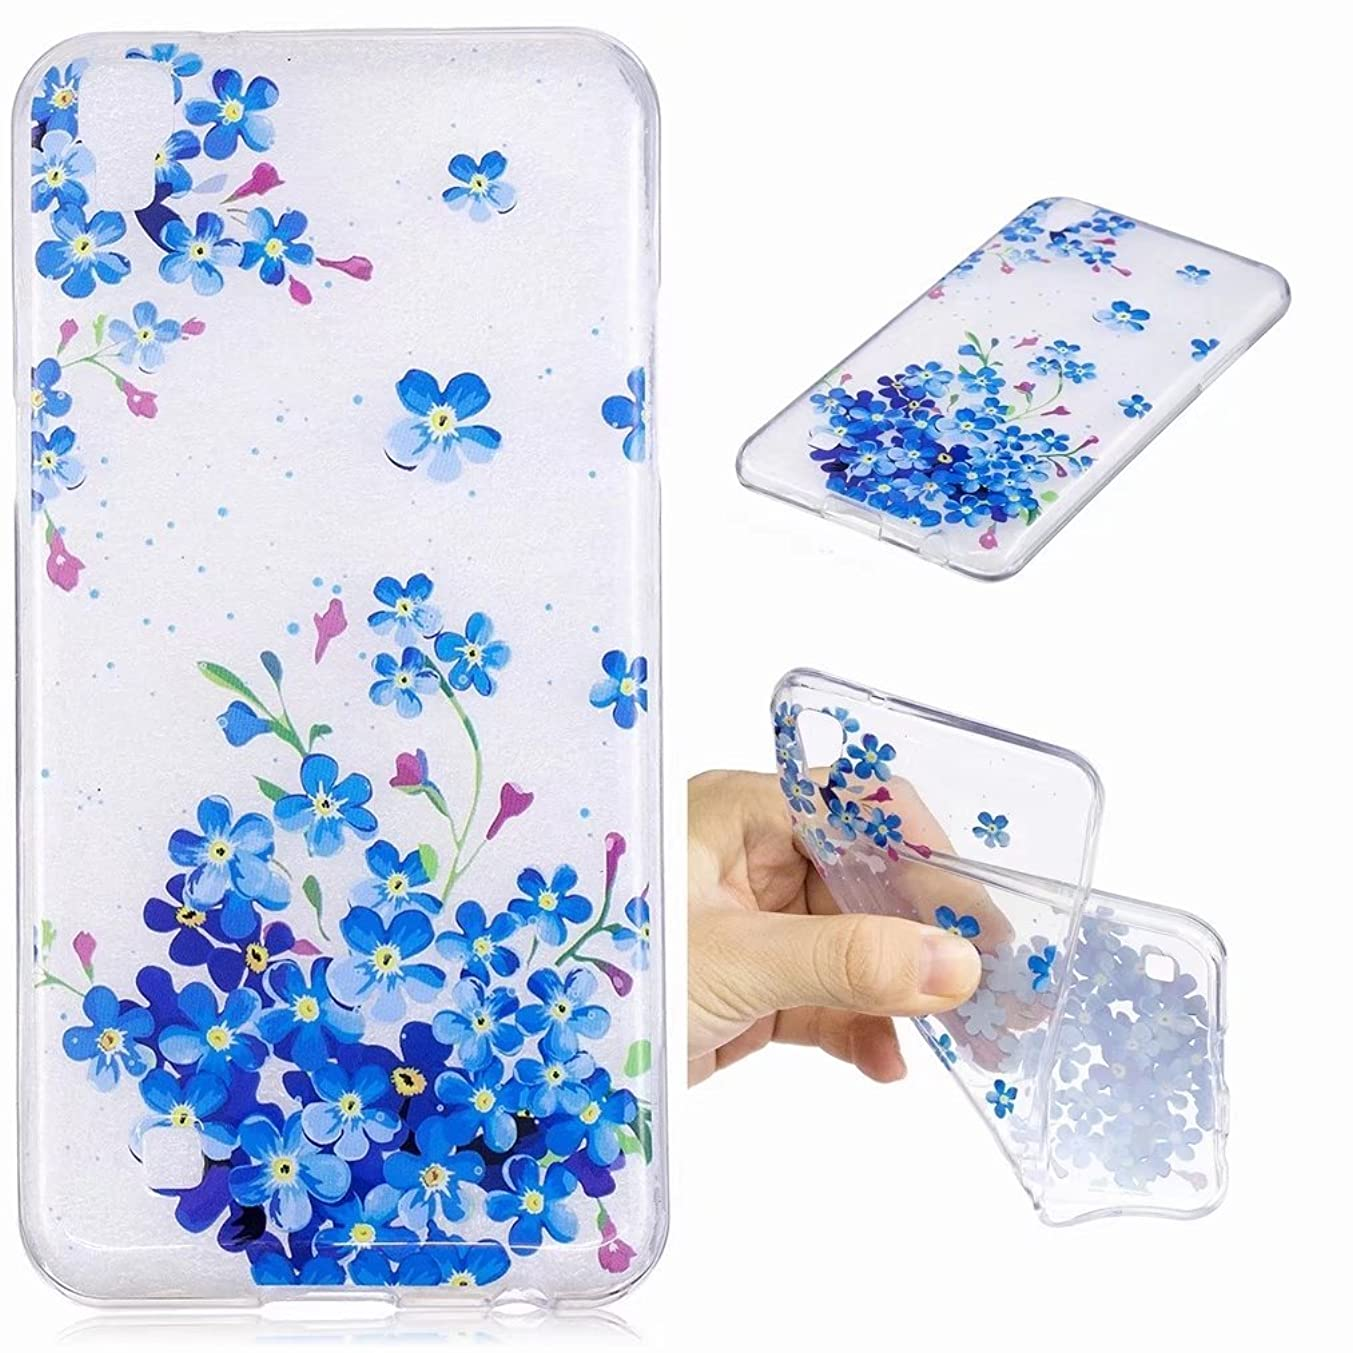 Yiizy Case Cover for LG X Power / K220DS Case, Blue Flowers Ultra Thin Clear Transparent Cover Soft TPU Silicone Skin Bumper Lightweight Rubber Protective Crystal Slim Fit Back Rear